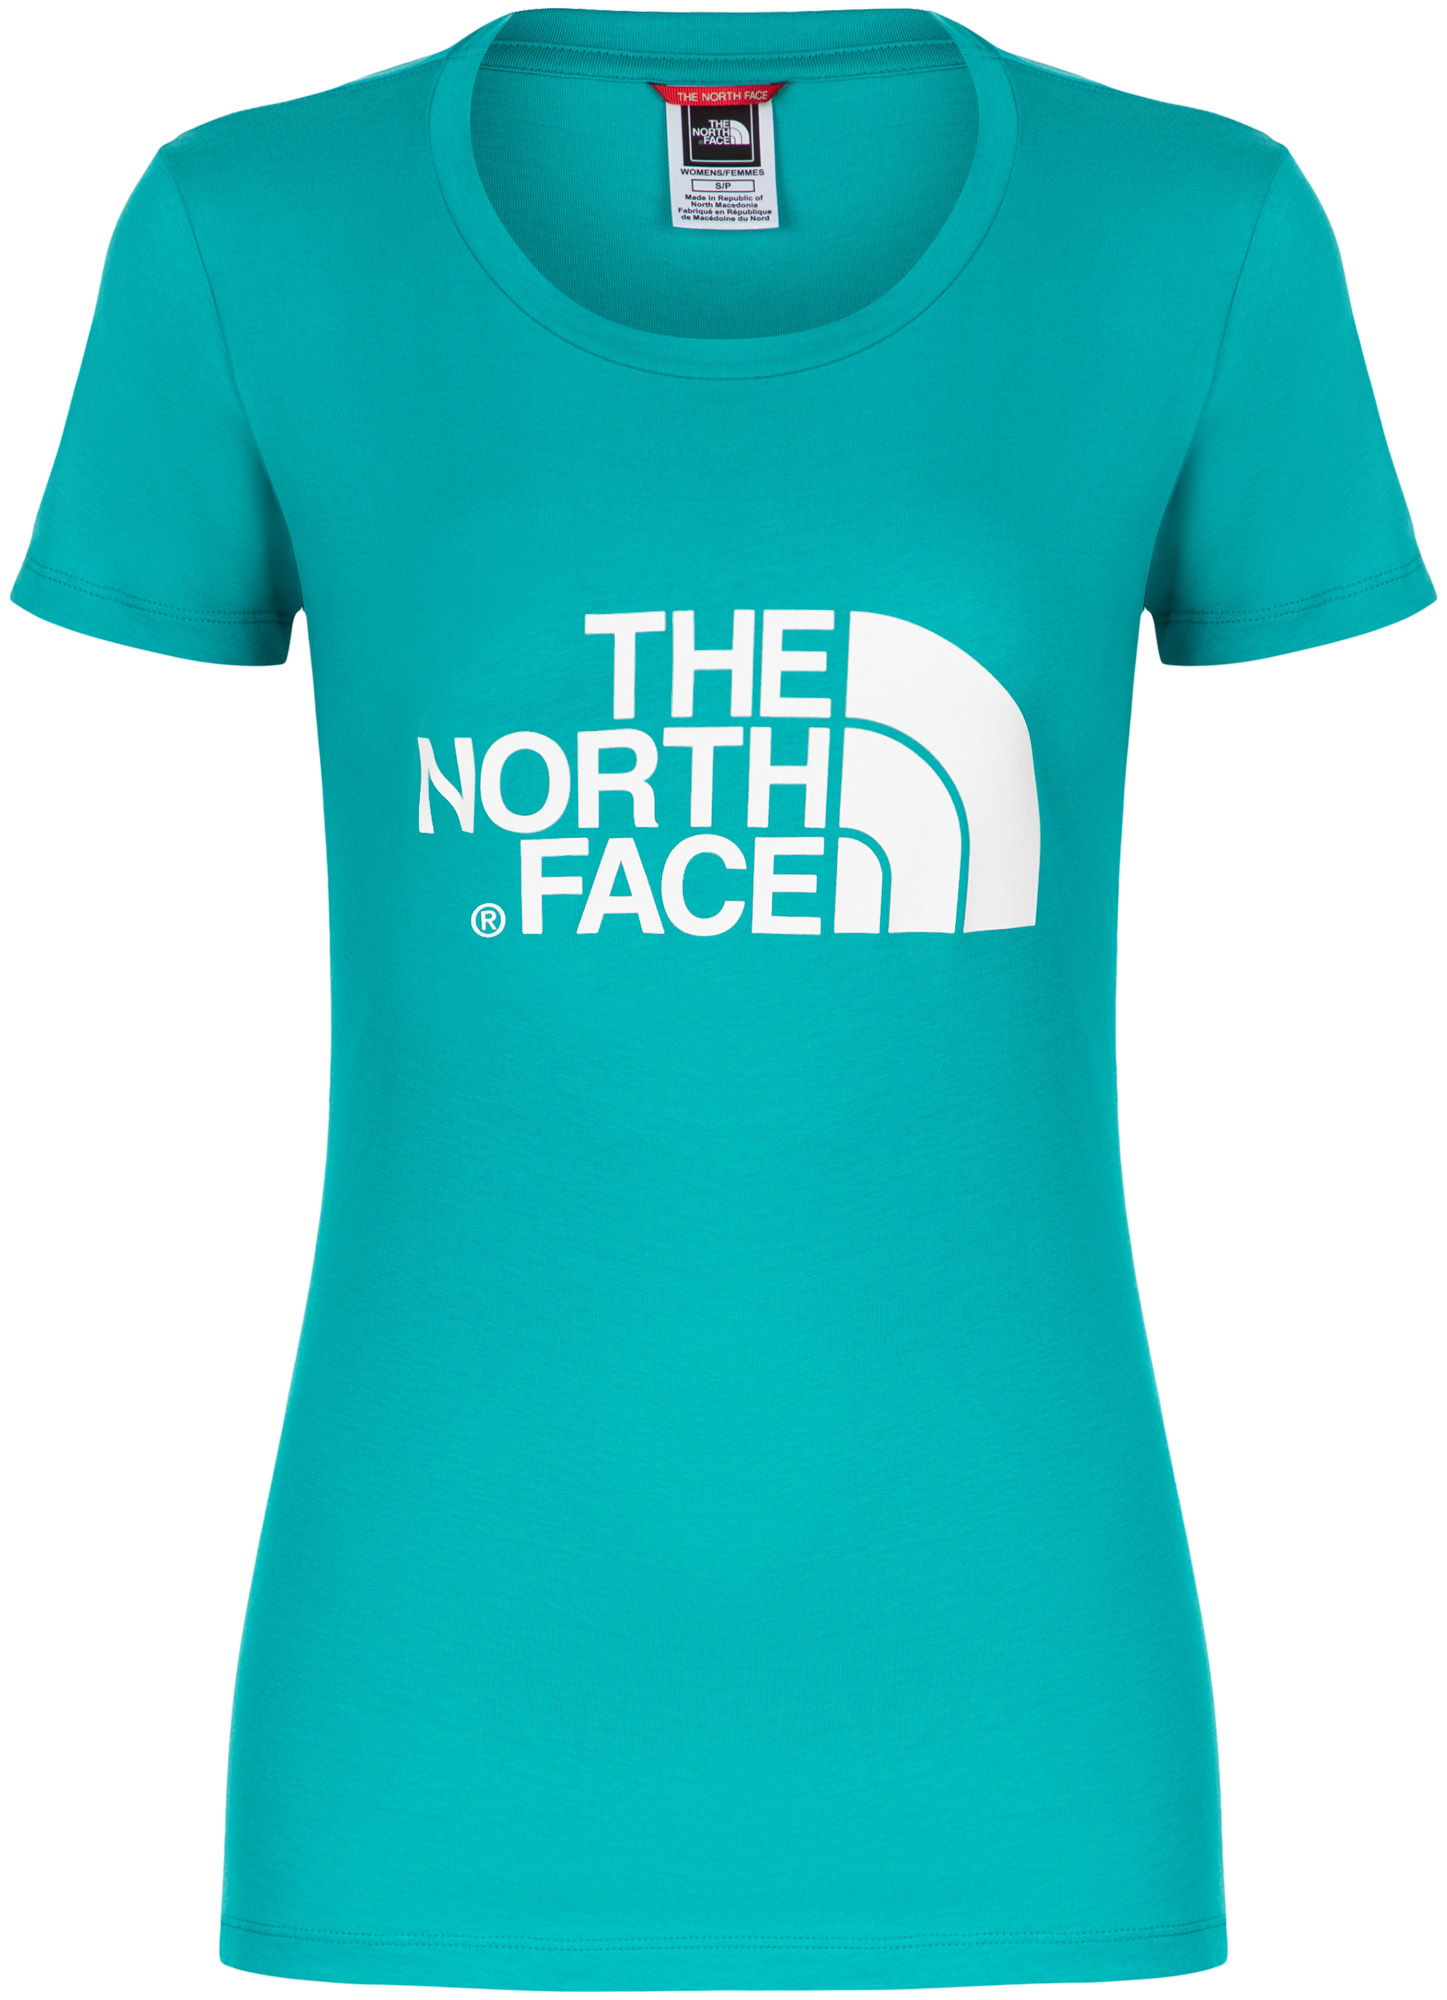 The North Face Футболка женская The North Face Easy, размер 48 футболка the north face the north face th016emanvy5